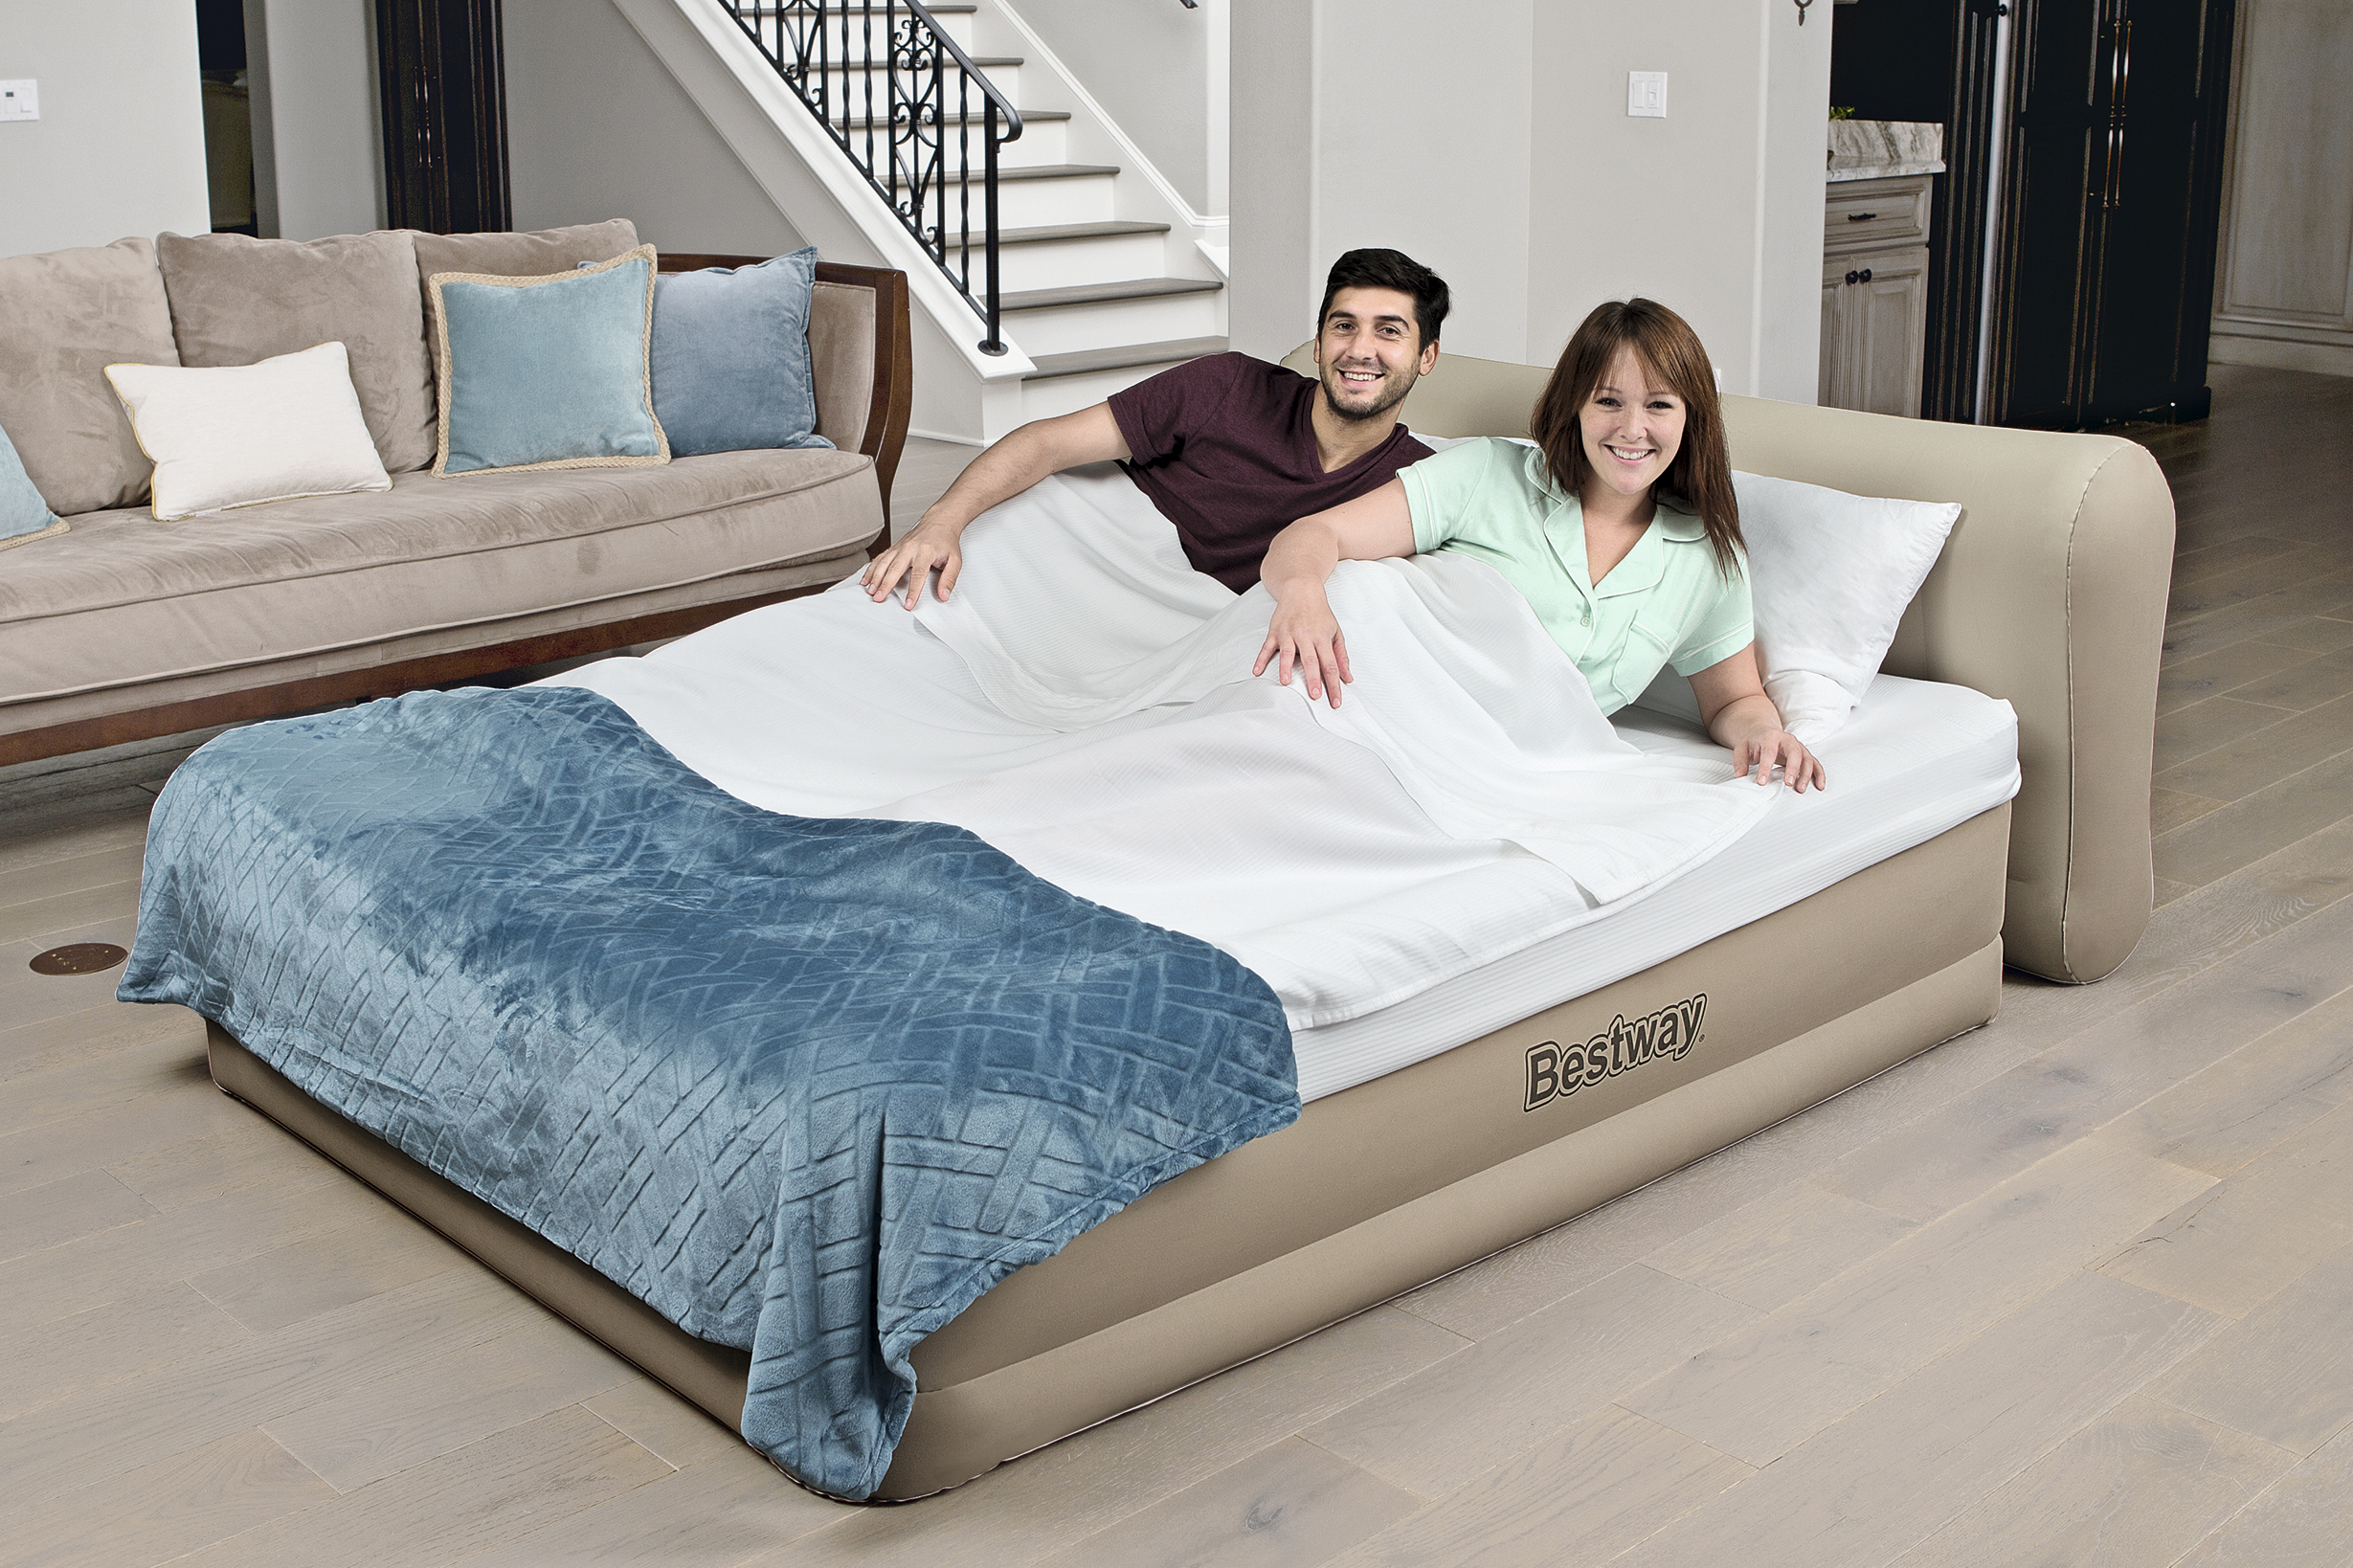 free pump mattress built frame queen product in with shipping raised air comfort sleep black sports toys today overstock deep